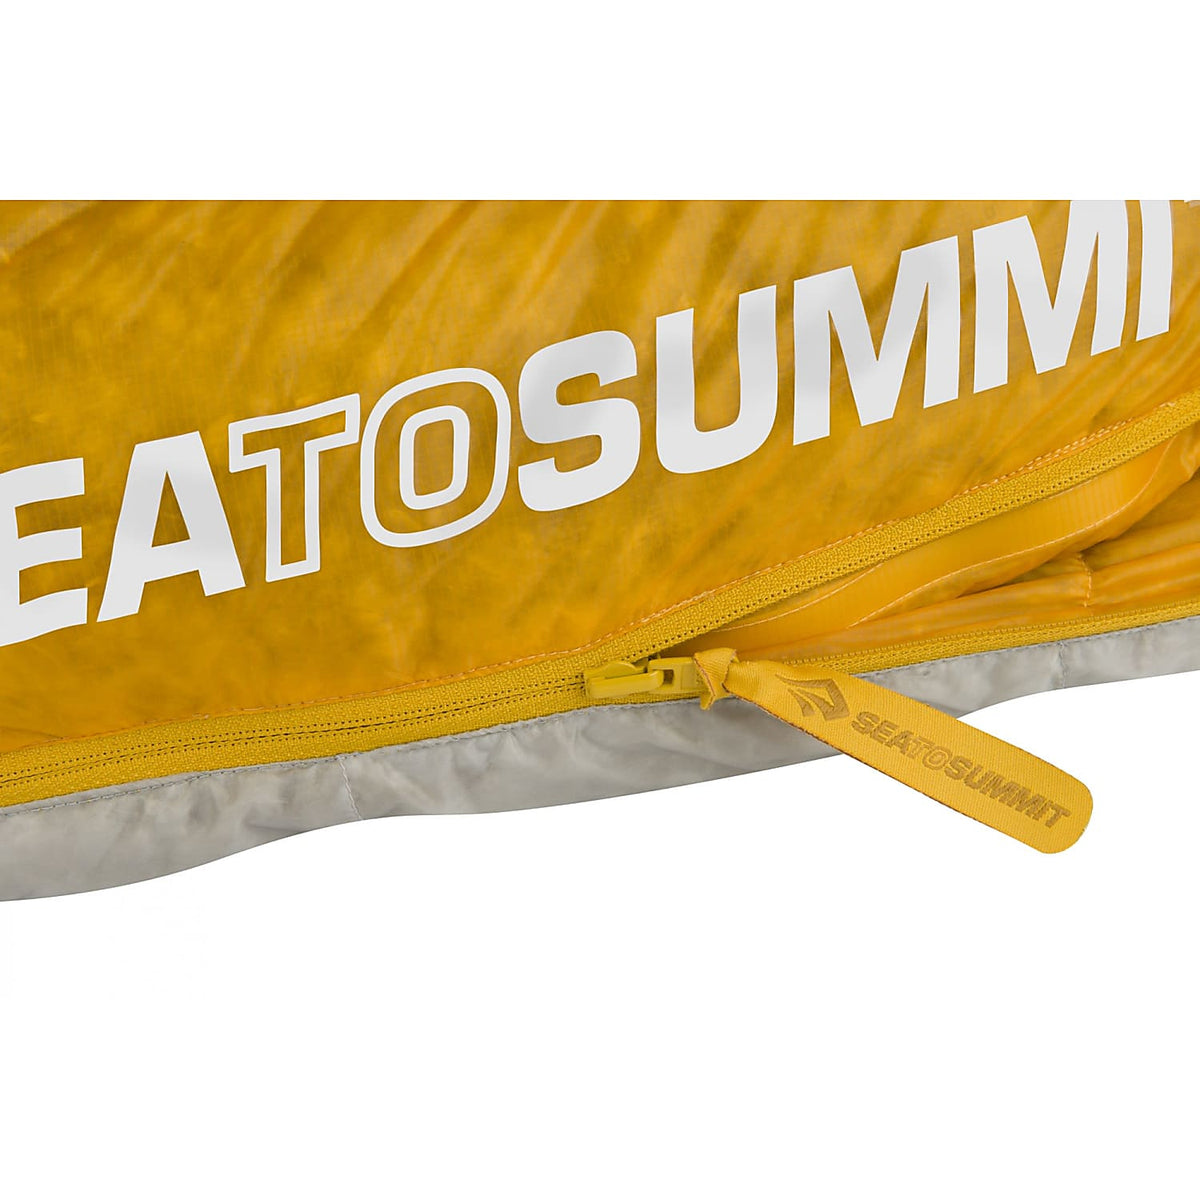 Sea to Summit Spark III sleeping bag showing zip and logo design detail